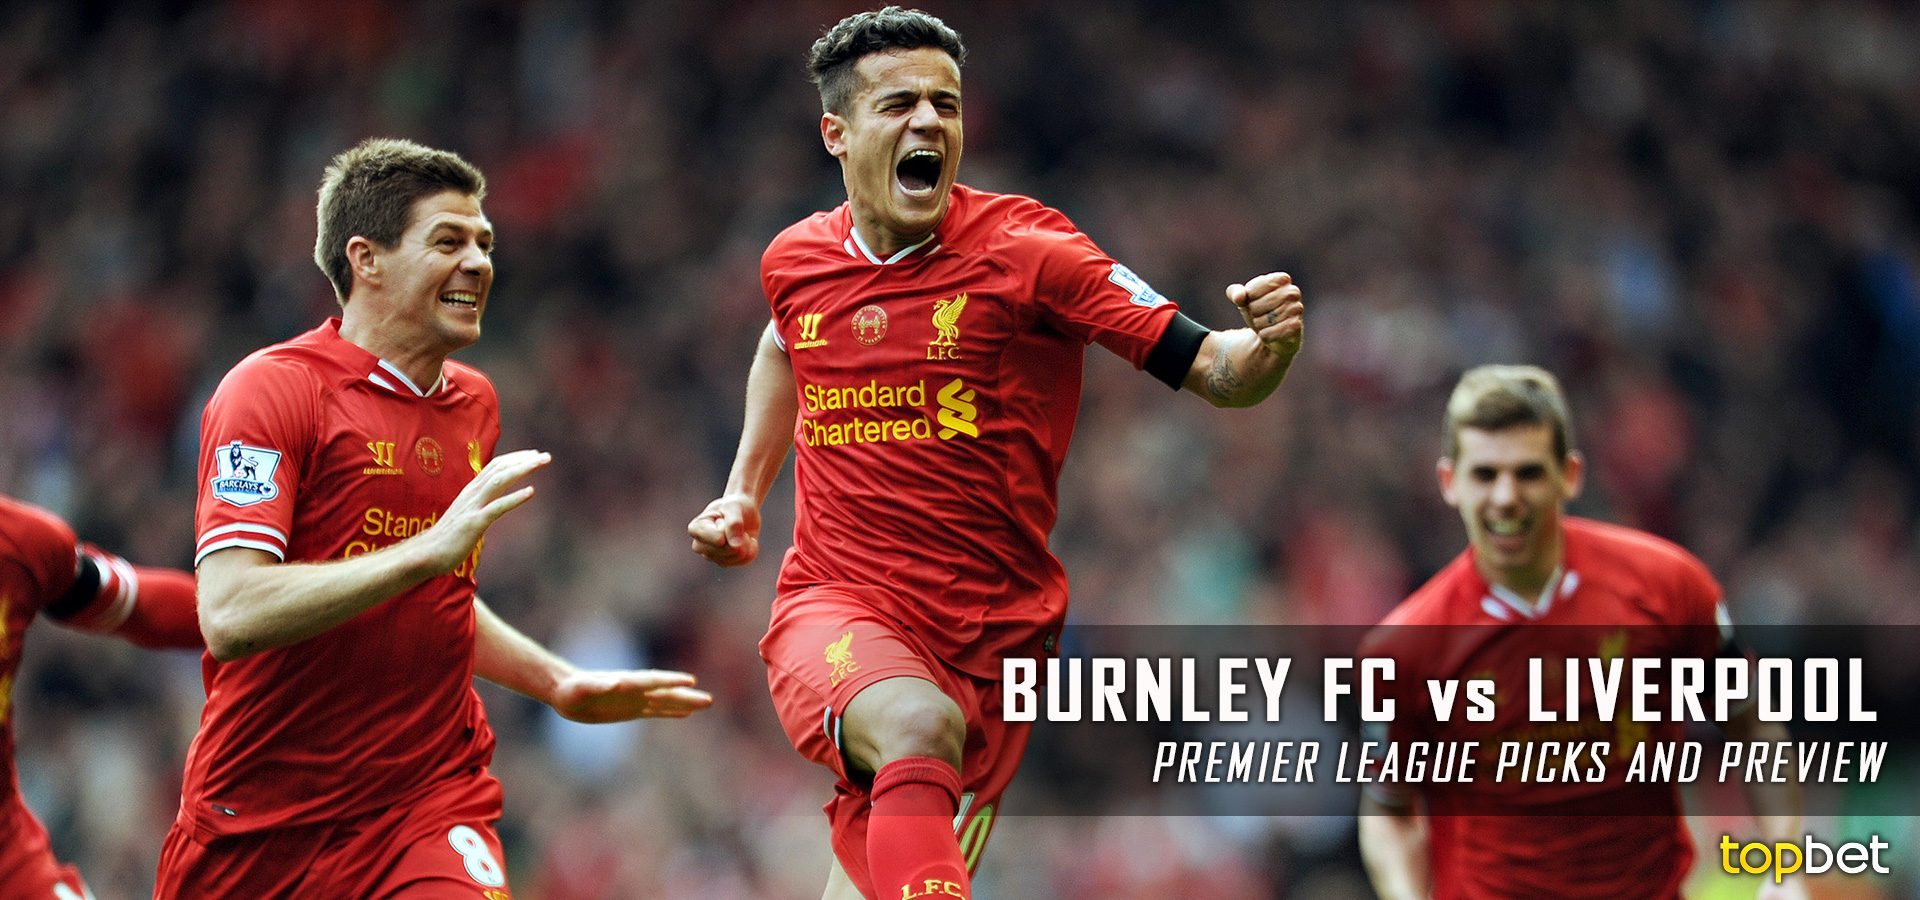 burnley fc vs liverpool - photo #5